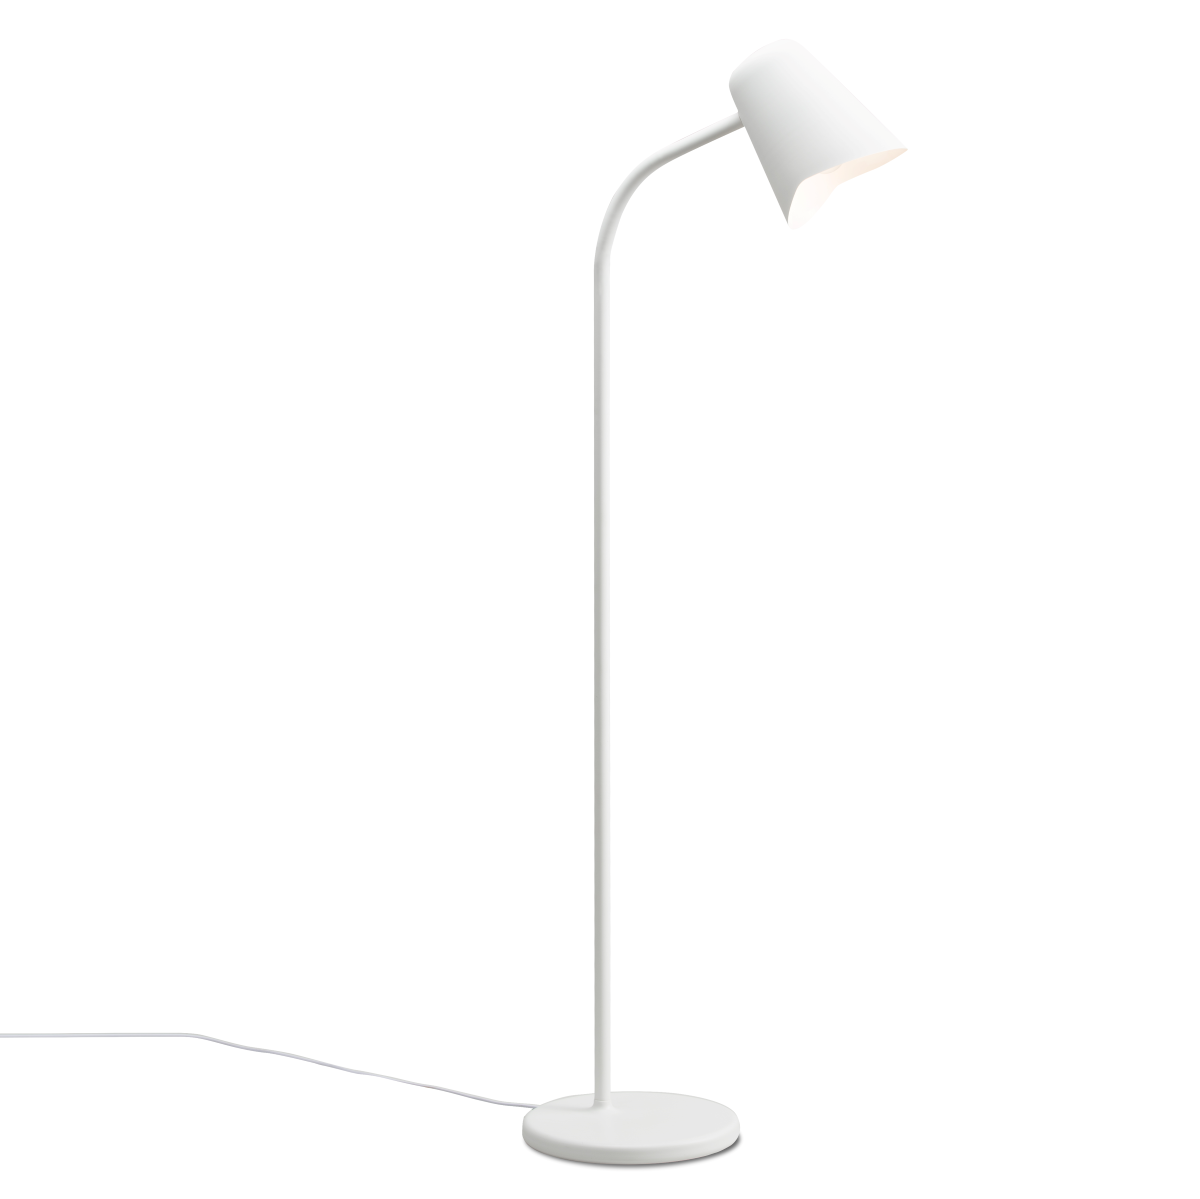 schmale led-stehleuchte valerie  stehleuchte led dimmbar